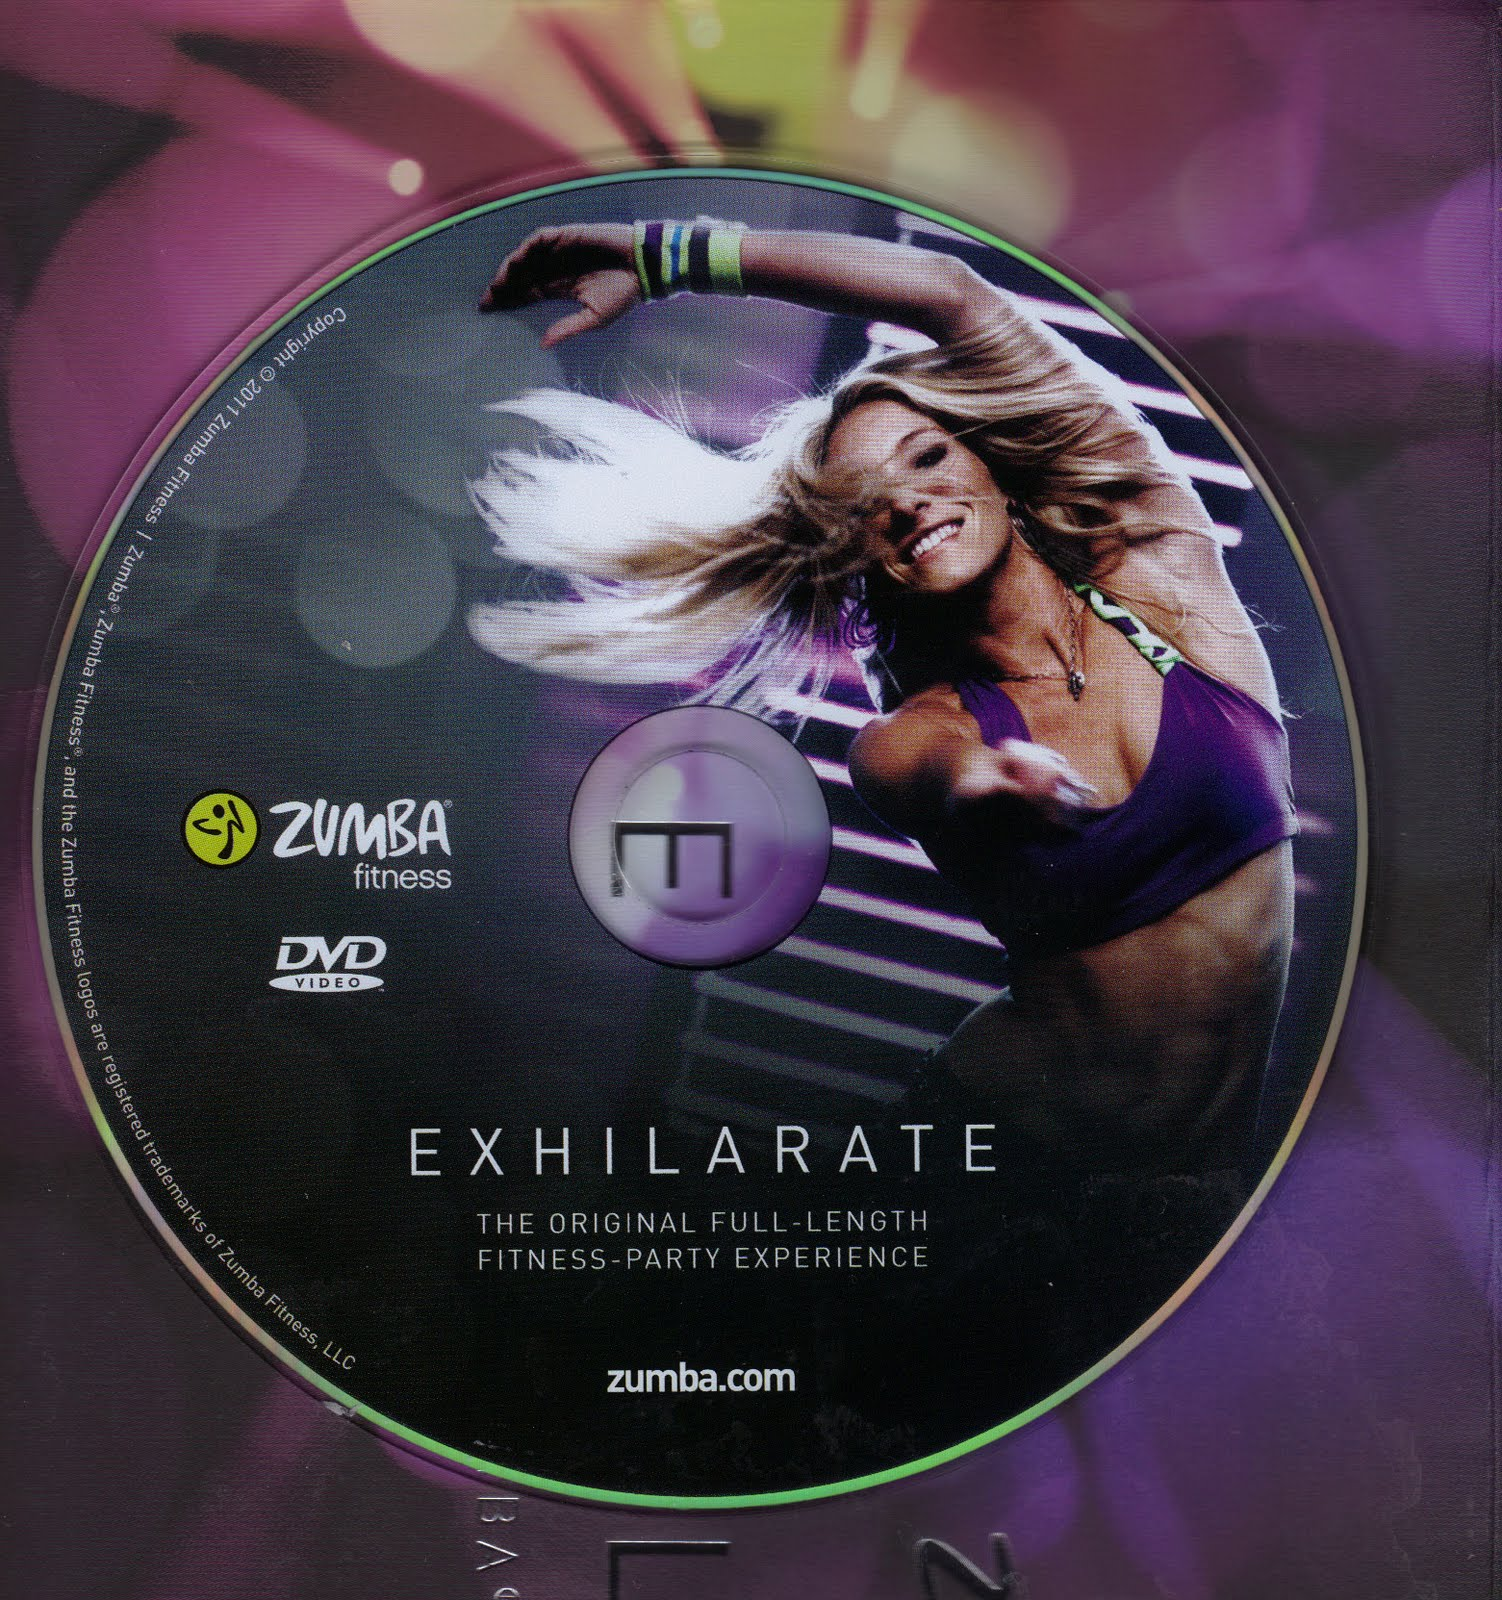 descargar zumba exhilarate gratis